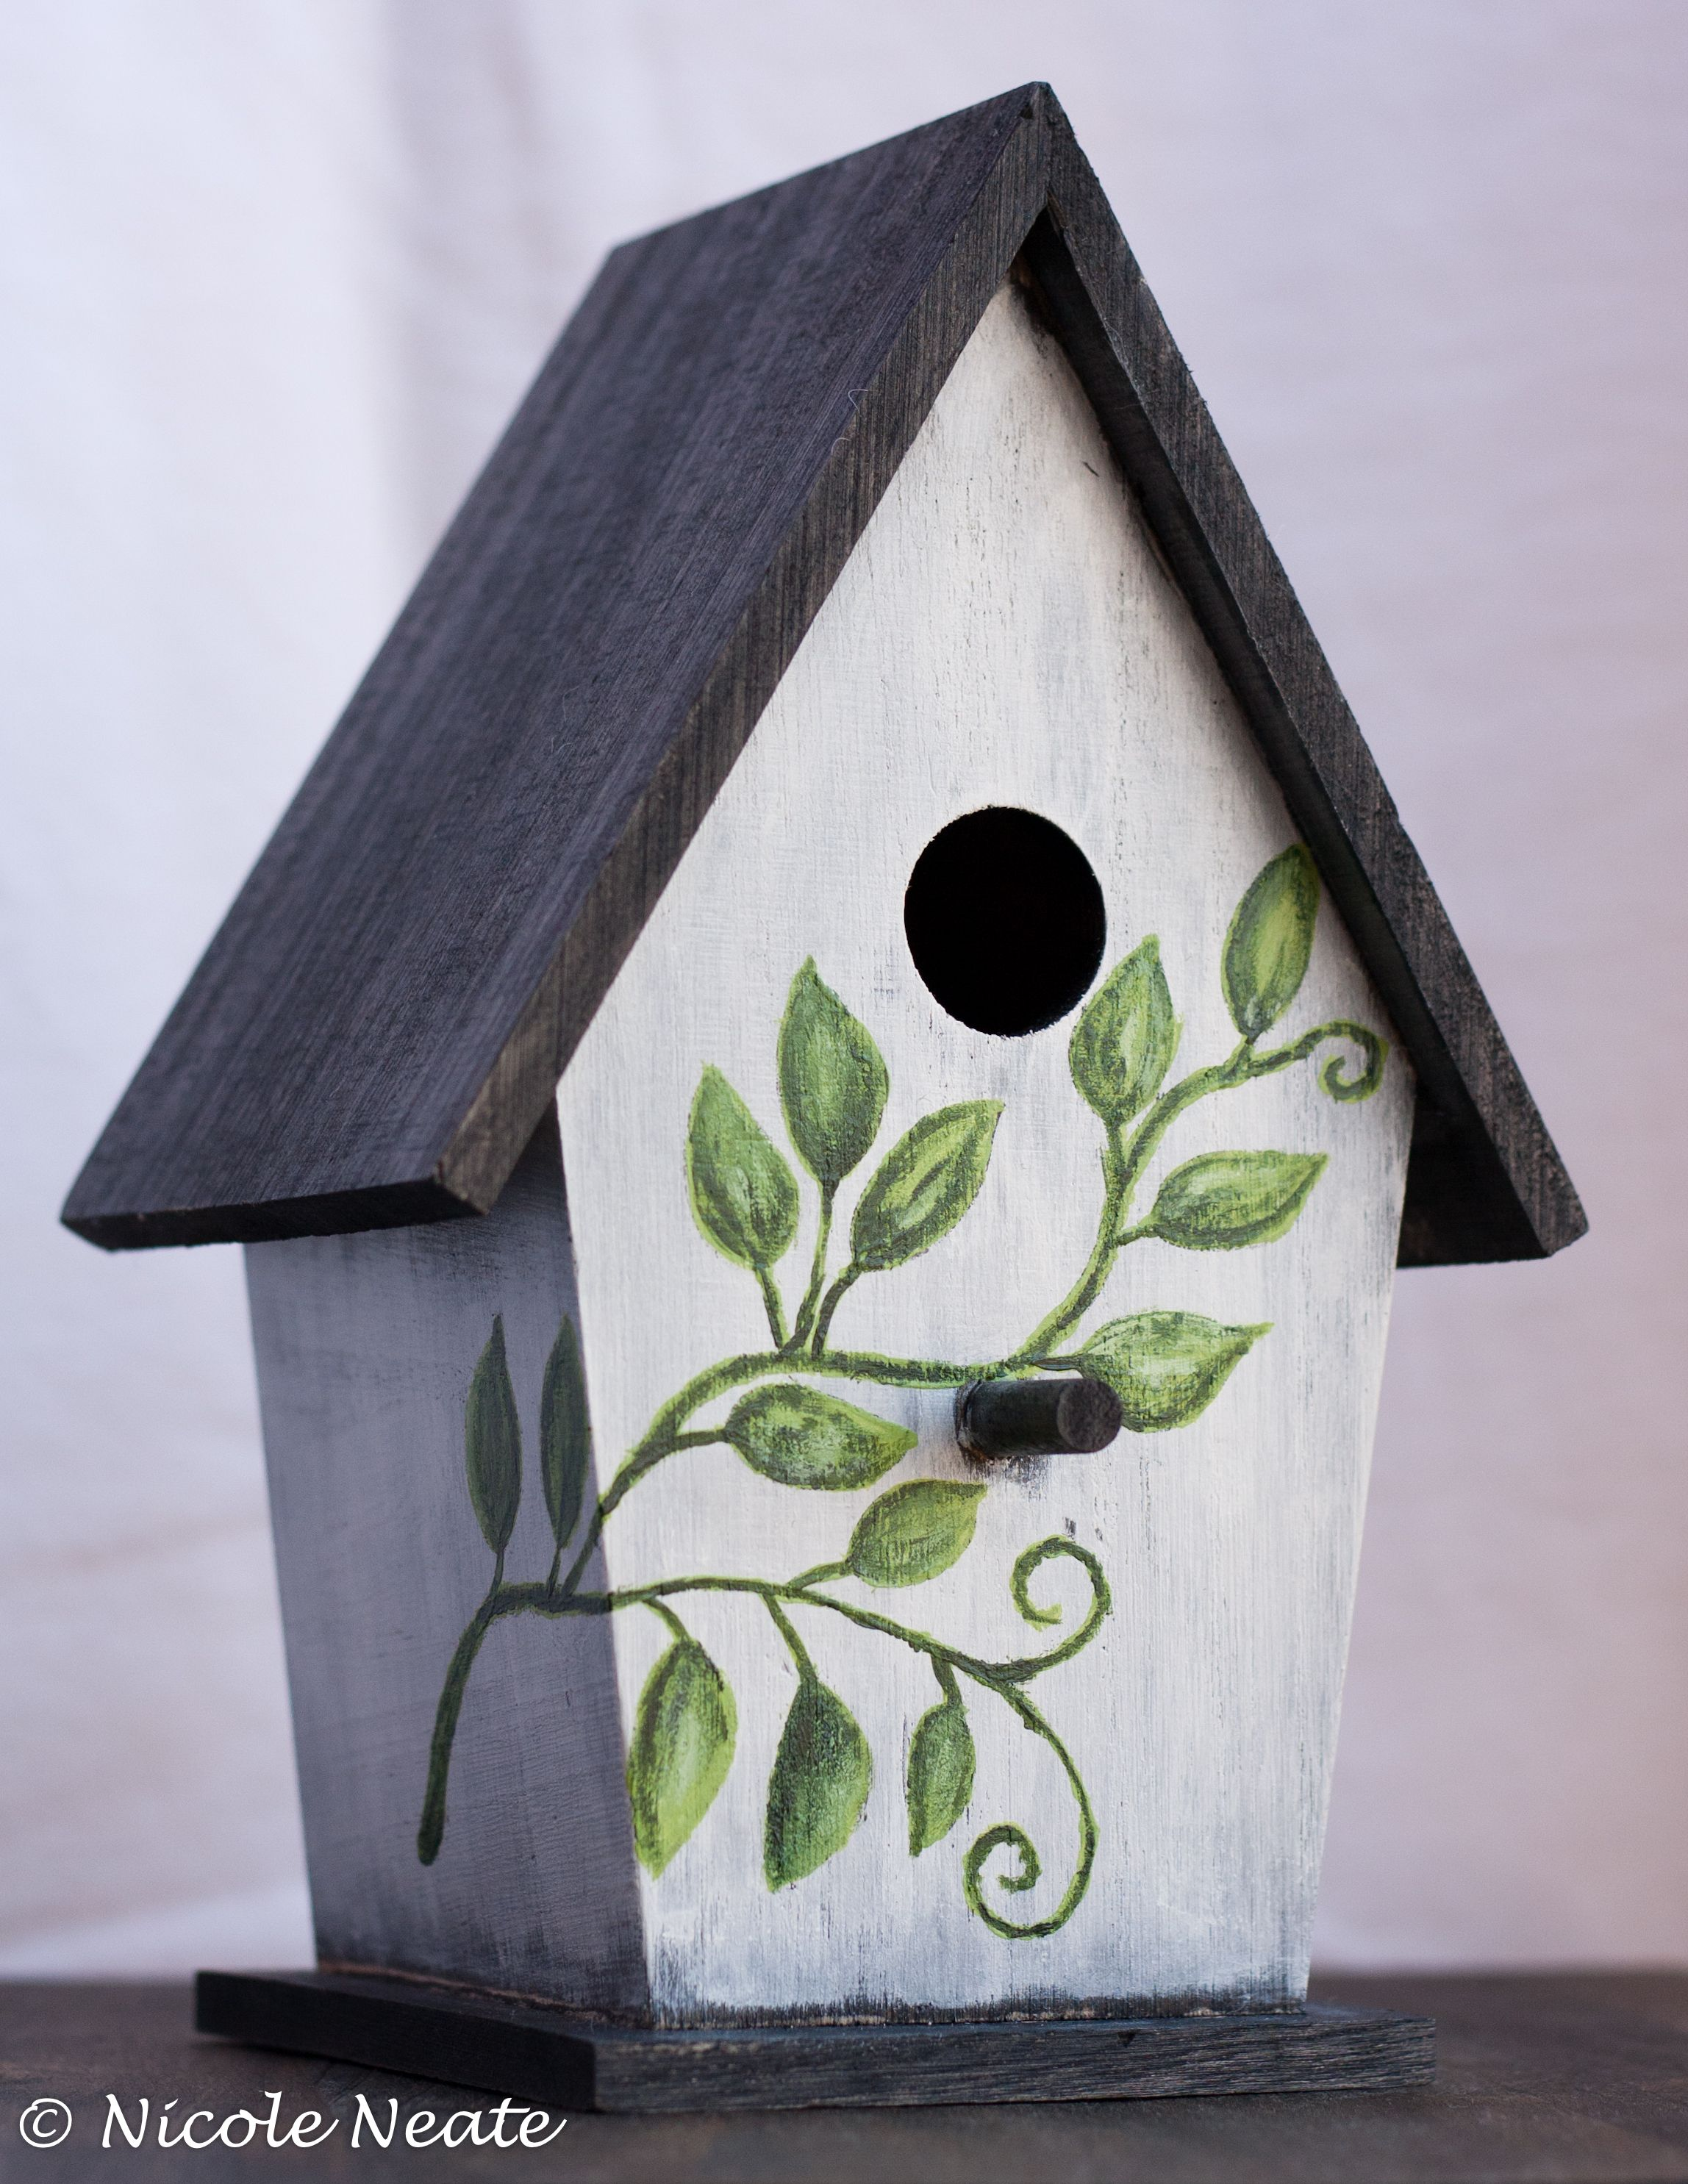 2344b17380827606fb0e588636927dcf Painted Bird Houses Designs Ideas on home office design ideas, painted bird house craft, painted wood bird house, painted bird house with cat, computer nerd gift ideas, painted wood craft ideas, painted dresser ideas, pet cool house ideas, painted furniture, painted red and white bird, painted owl bird house, jewelry designs ideas, painted bird house roof, painted decorative bird houses designs, painted gingerbread house craft,